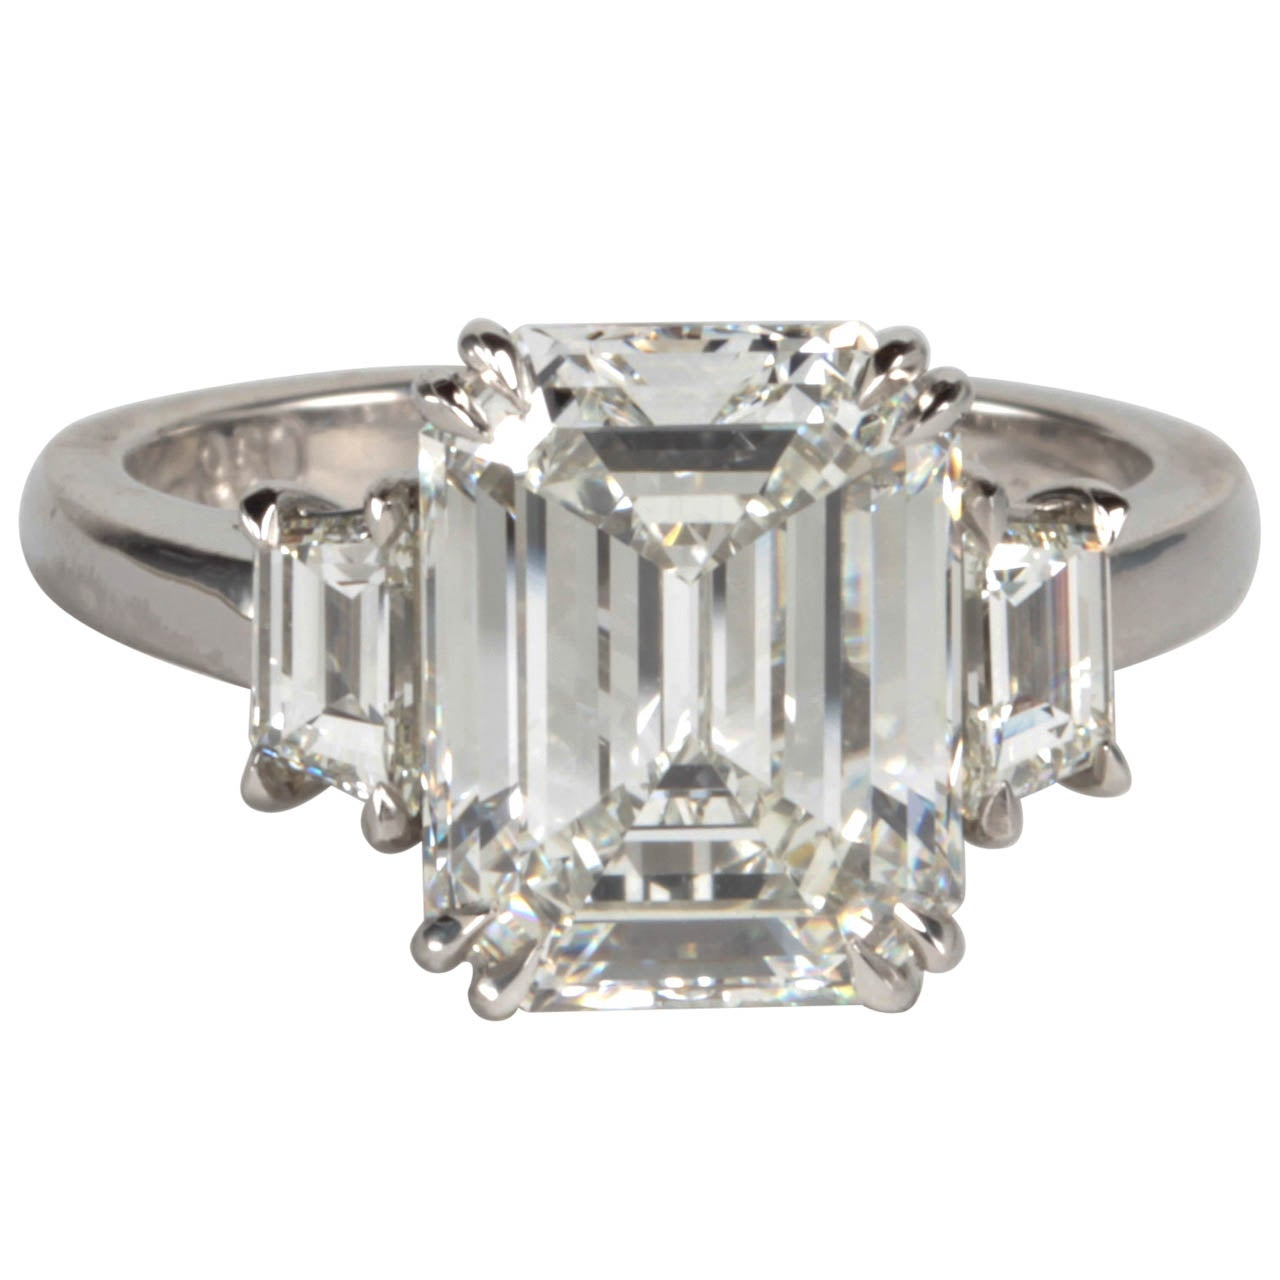 GIA Certified Emerald Cut F VS1 Diamond Platinum Ring